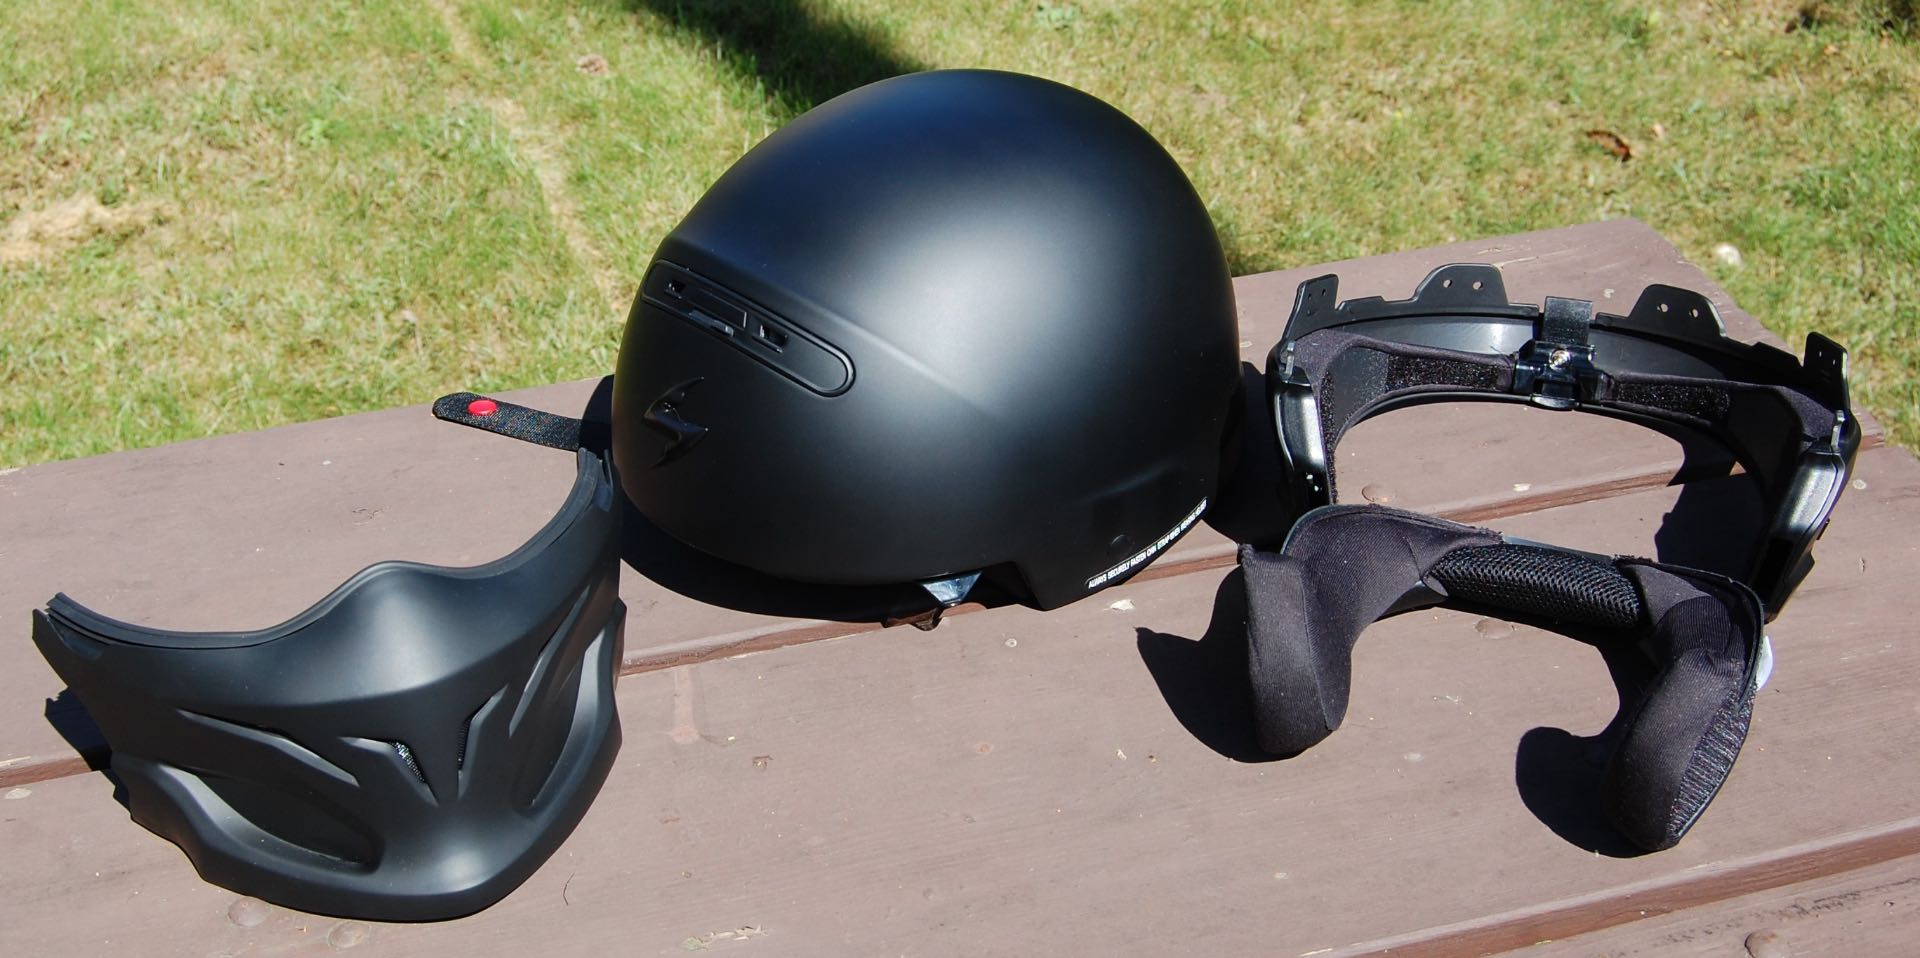 Scorpion Covert 3-in-1 Helmet disassembled